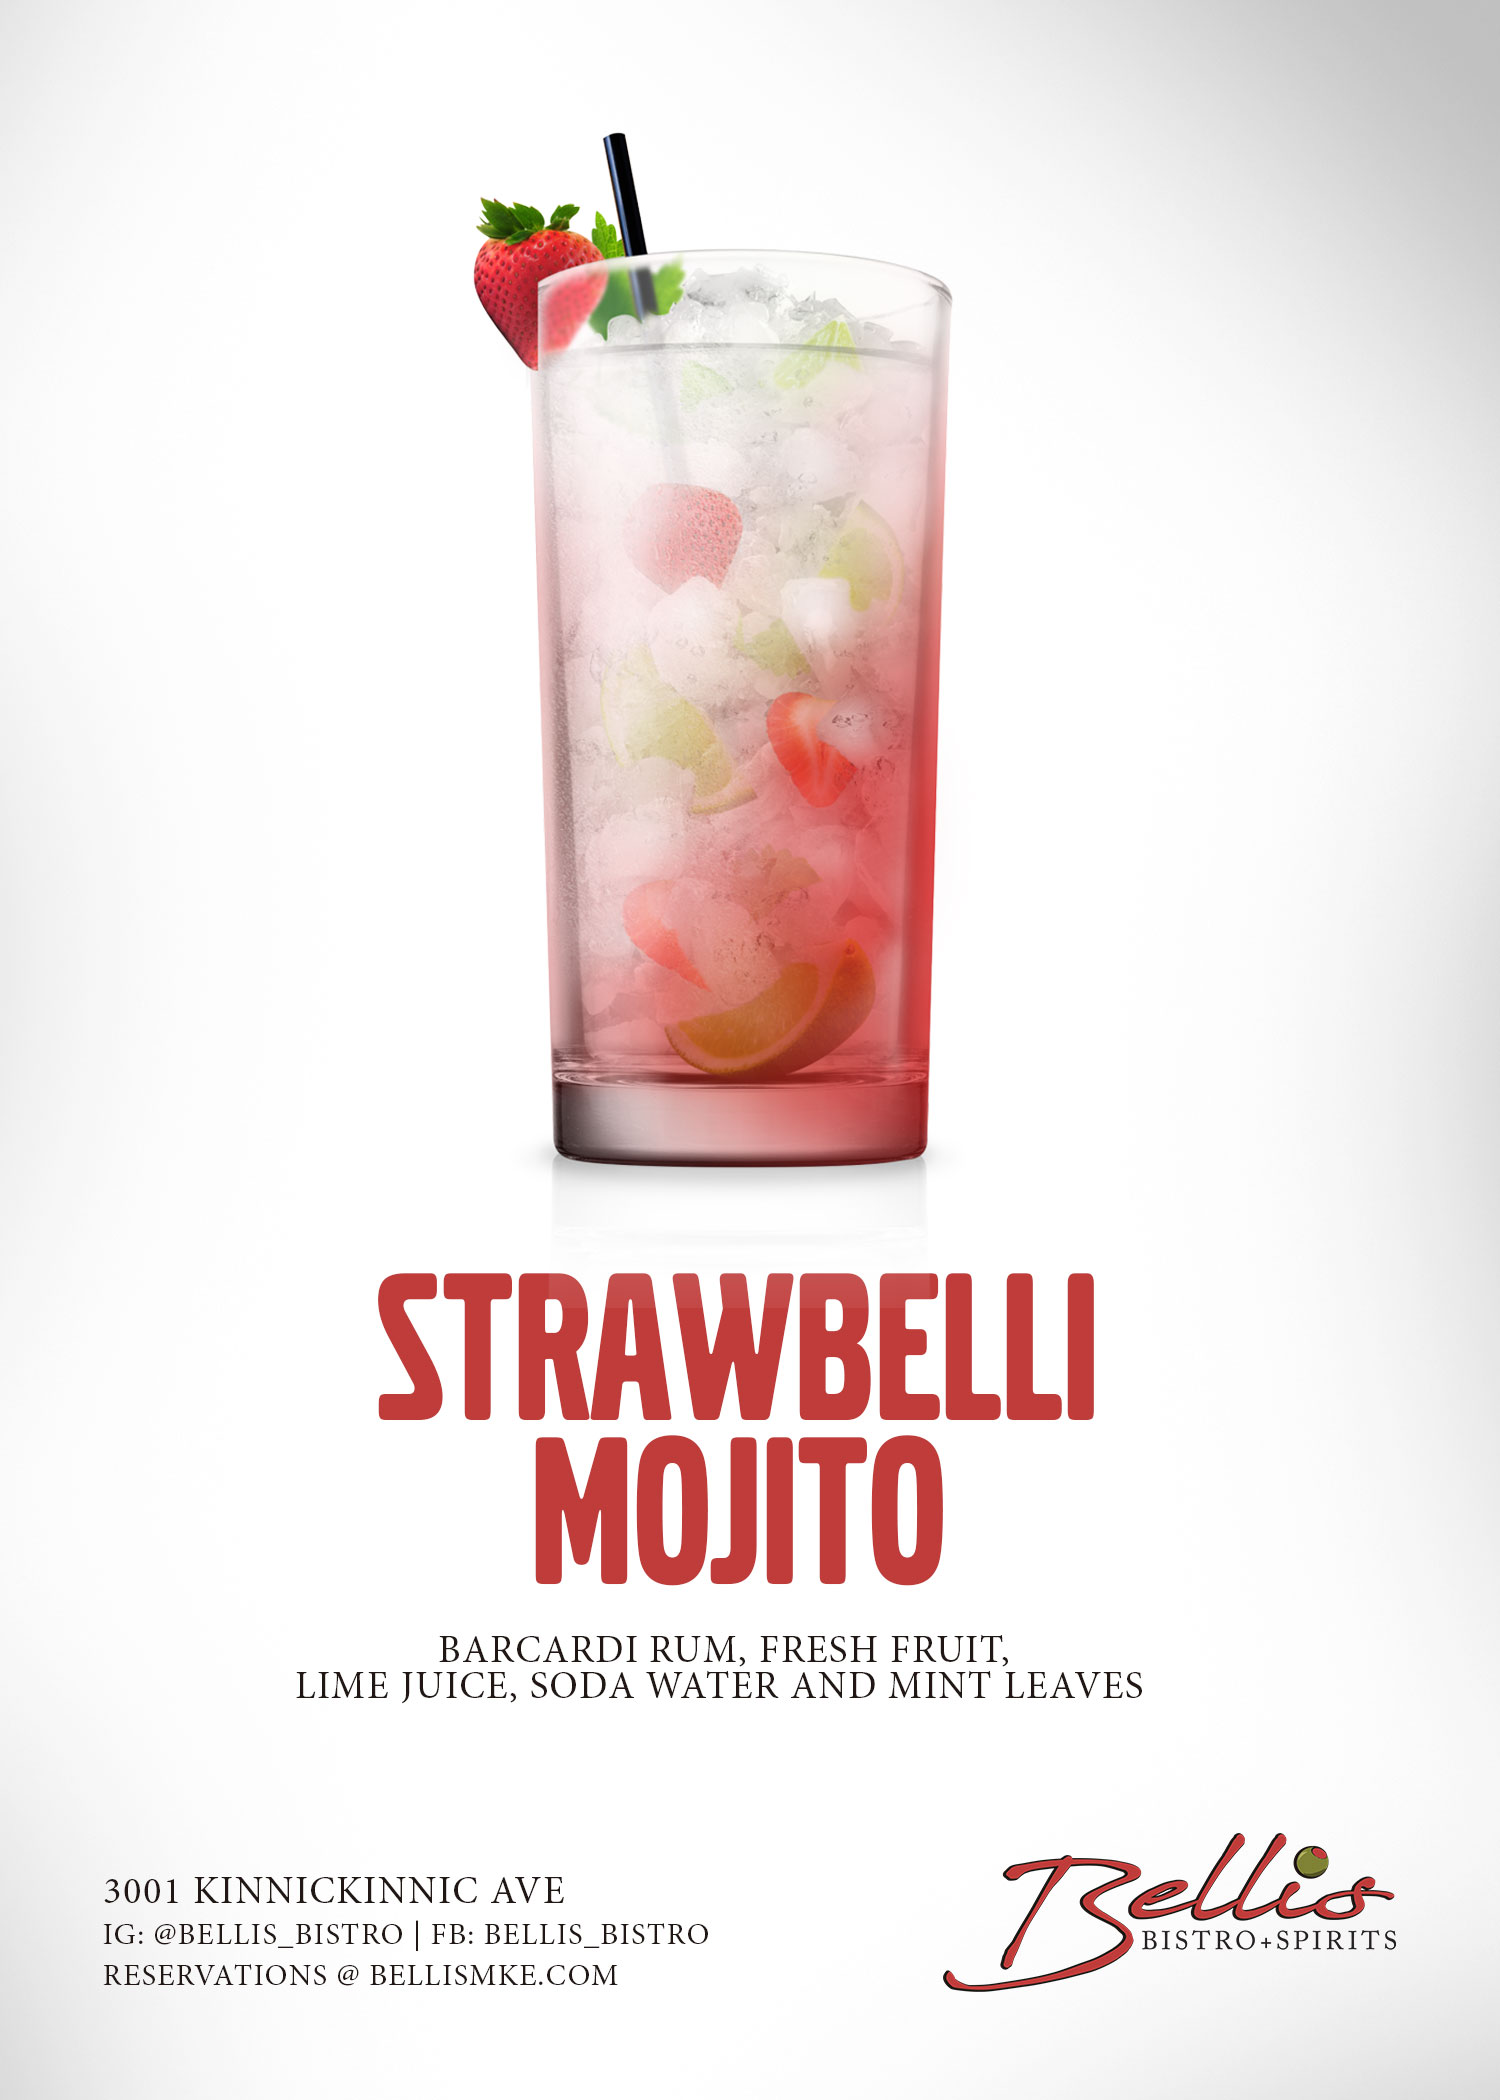 bellis-bistro-and-spirits-strawbelli-mojto